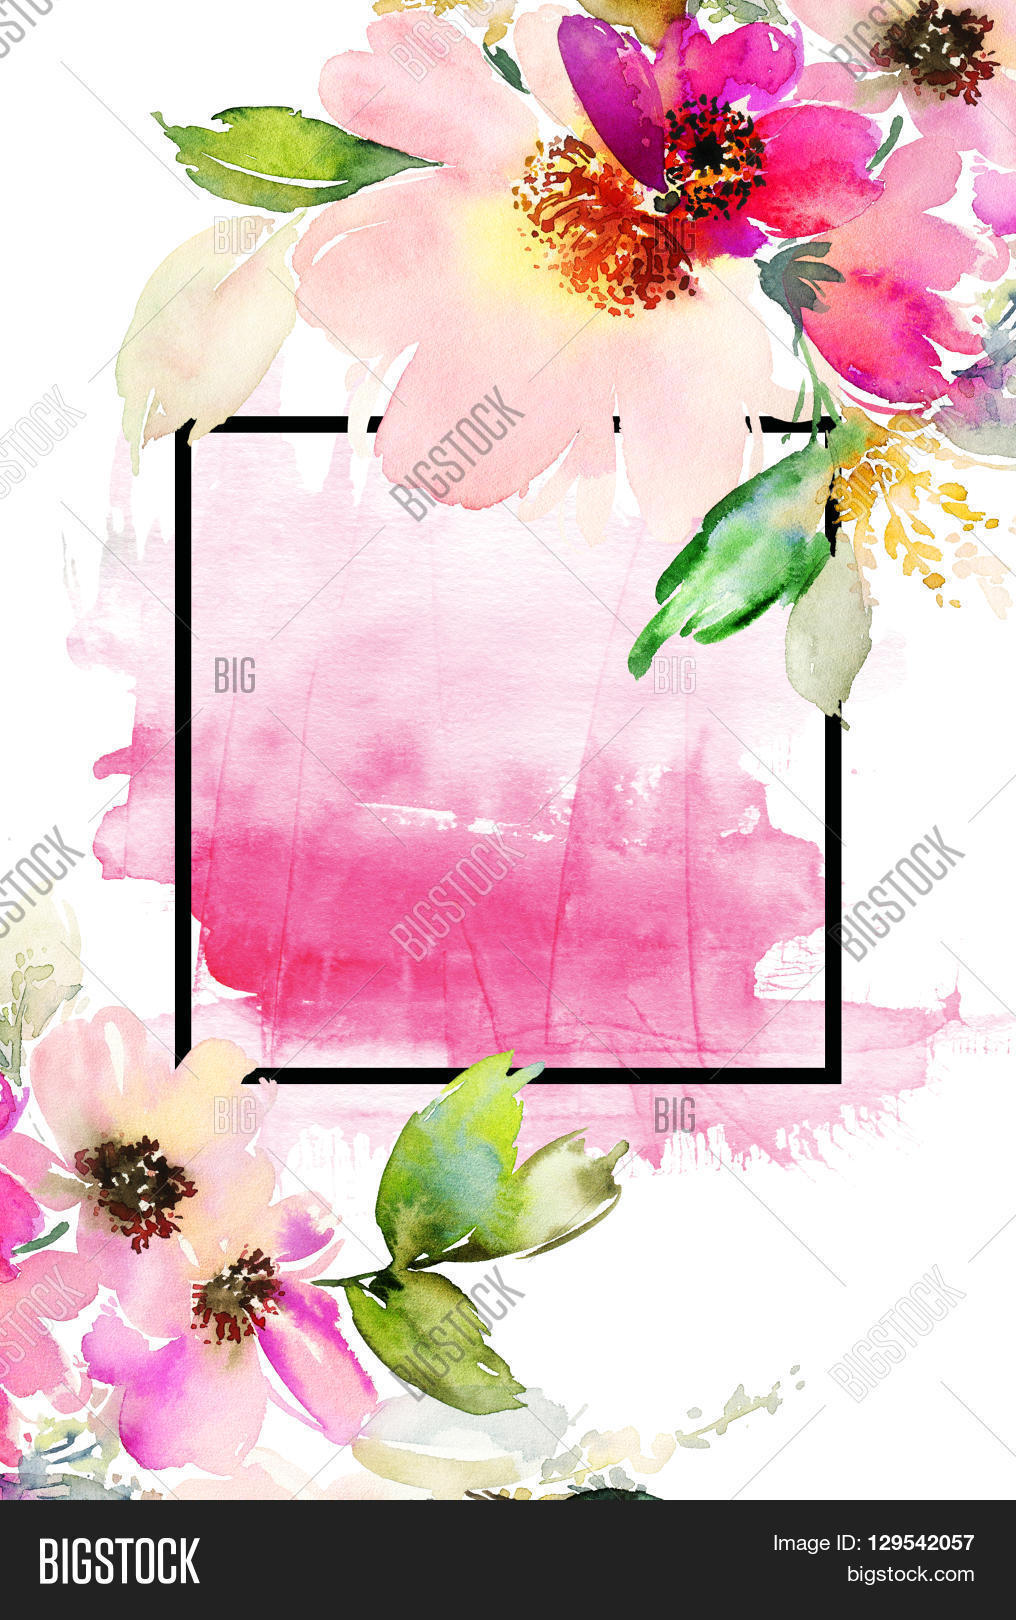 Greeting card flowers image photo free trial bigstock greeting card with flowers pastel colors handmade watercolor painting wedding birthday mothers izmirmasajfo